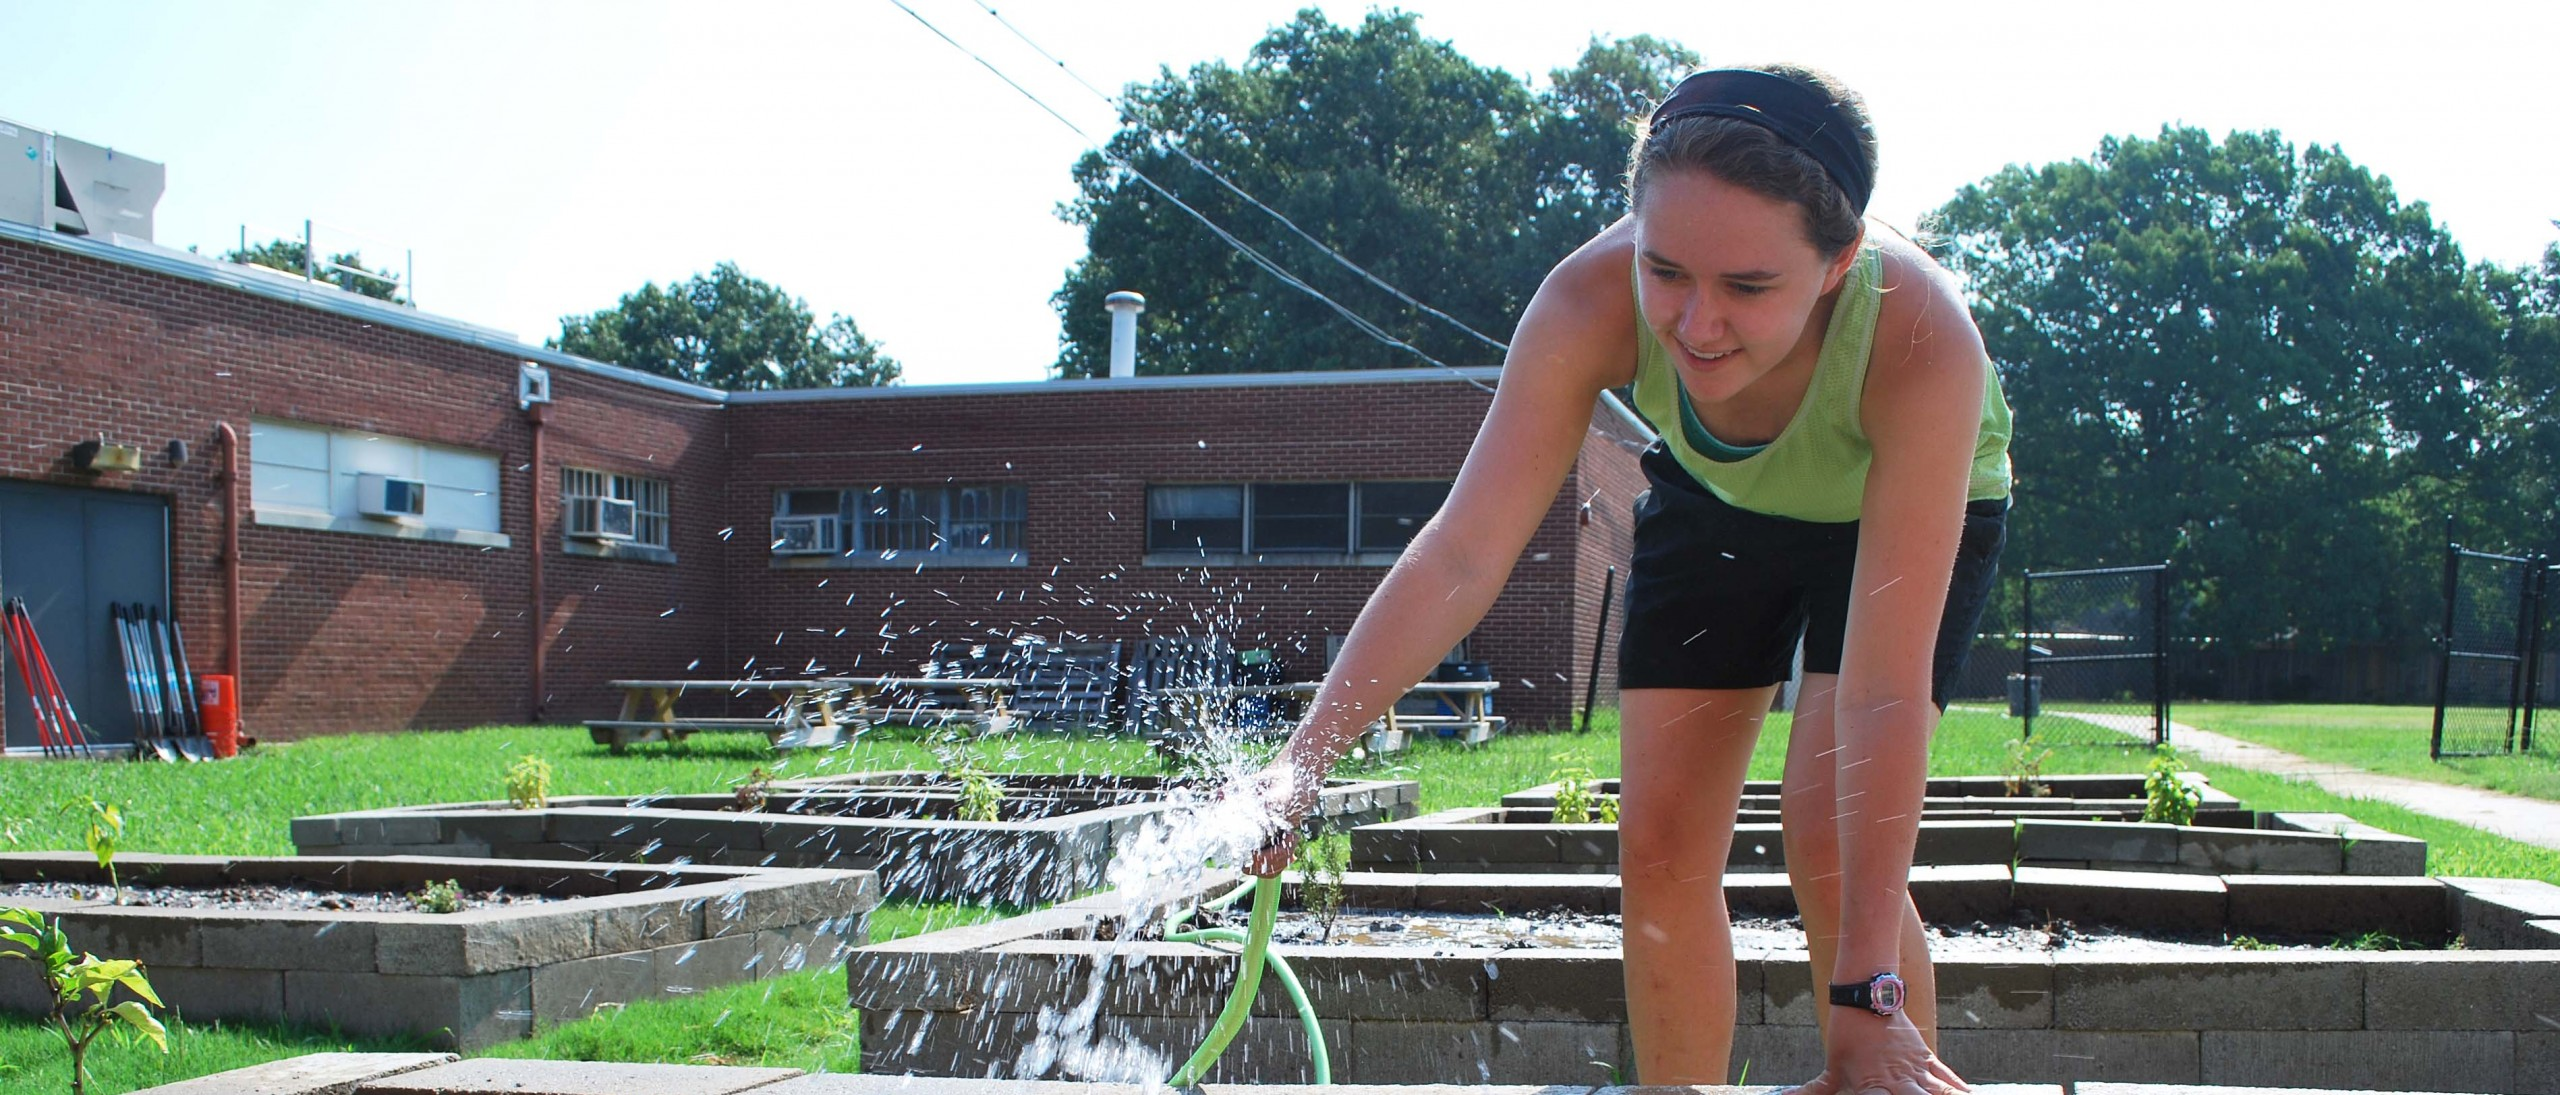 young woman watering one of several raised garden beds behinf brick school building